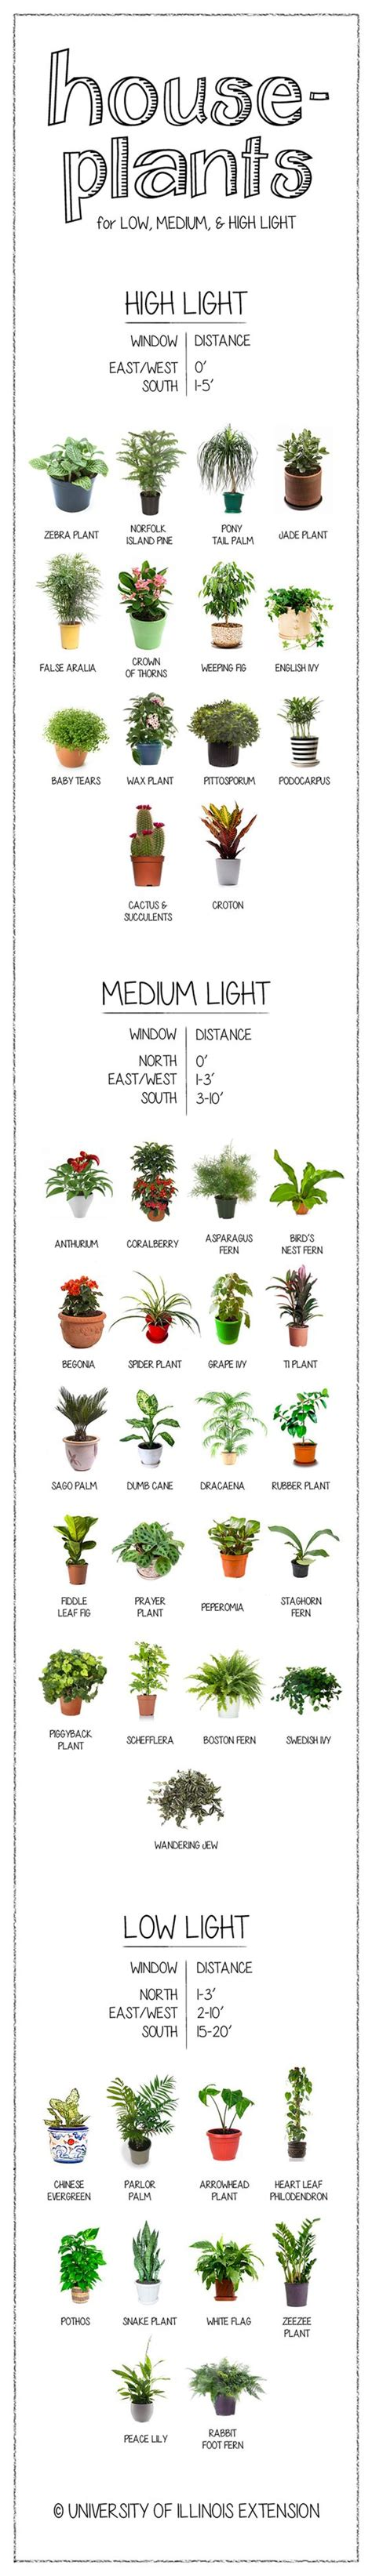 top houseplants for low medium and high light conditions houseplants for low medium bright light infographic